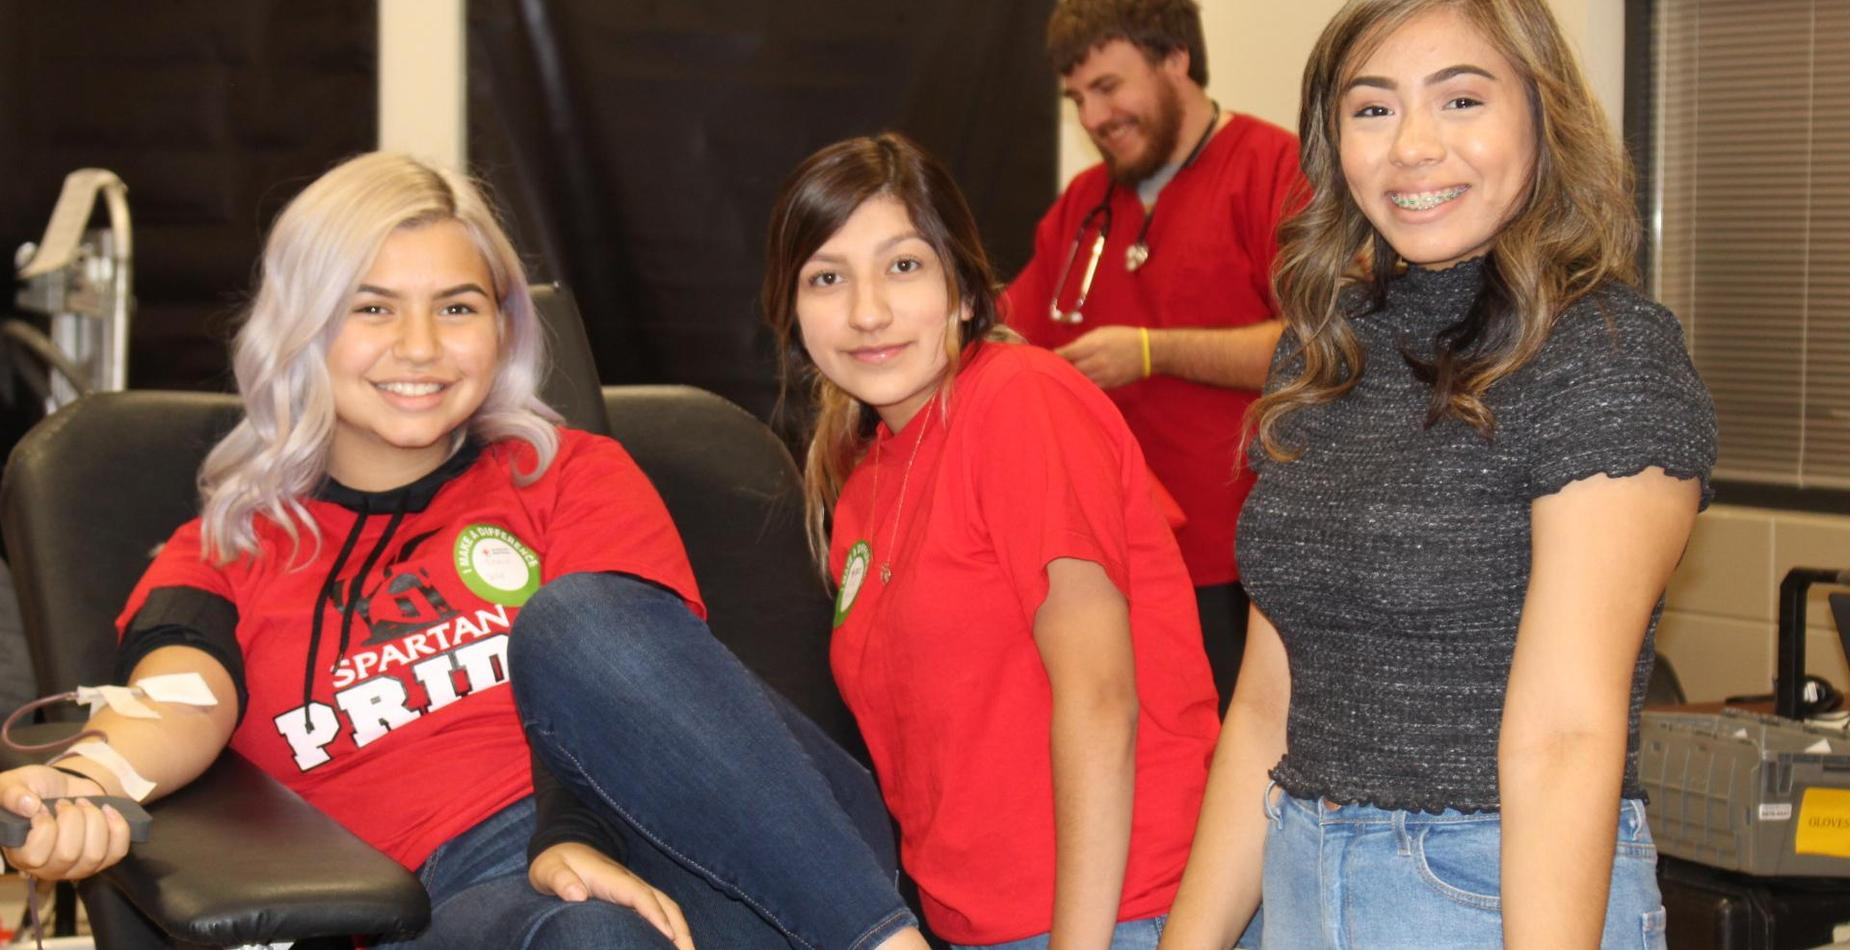 Students at Blood Drive